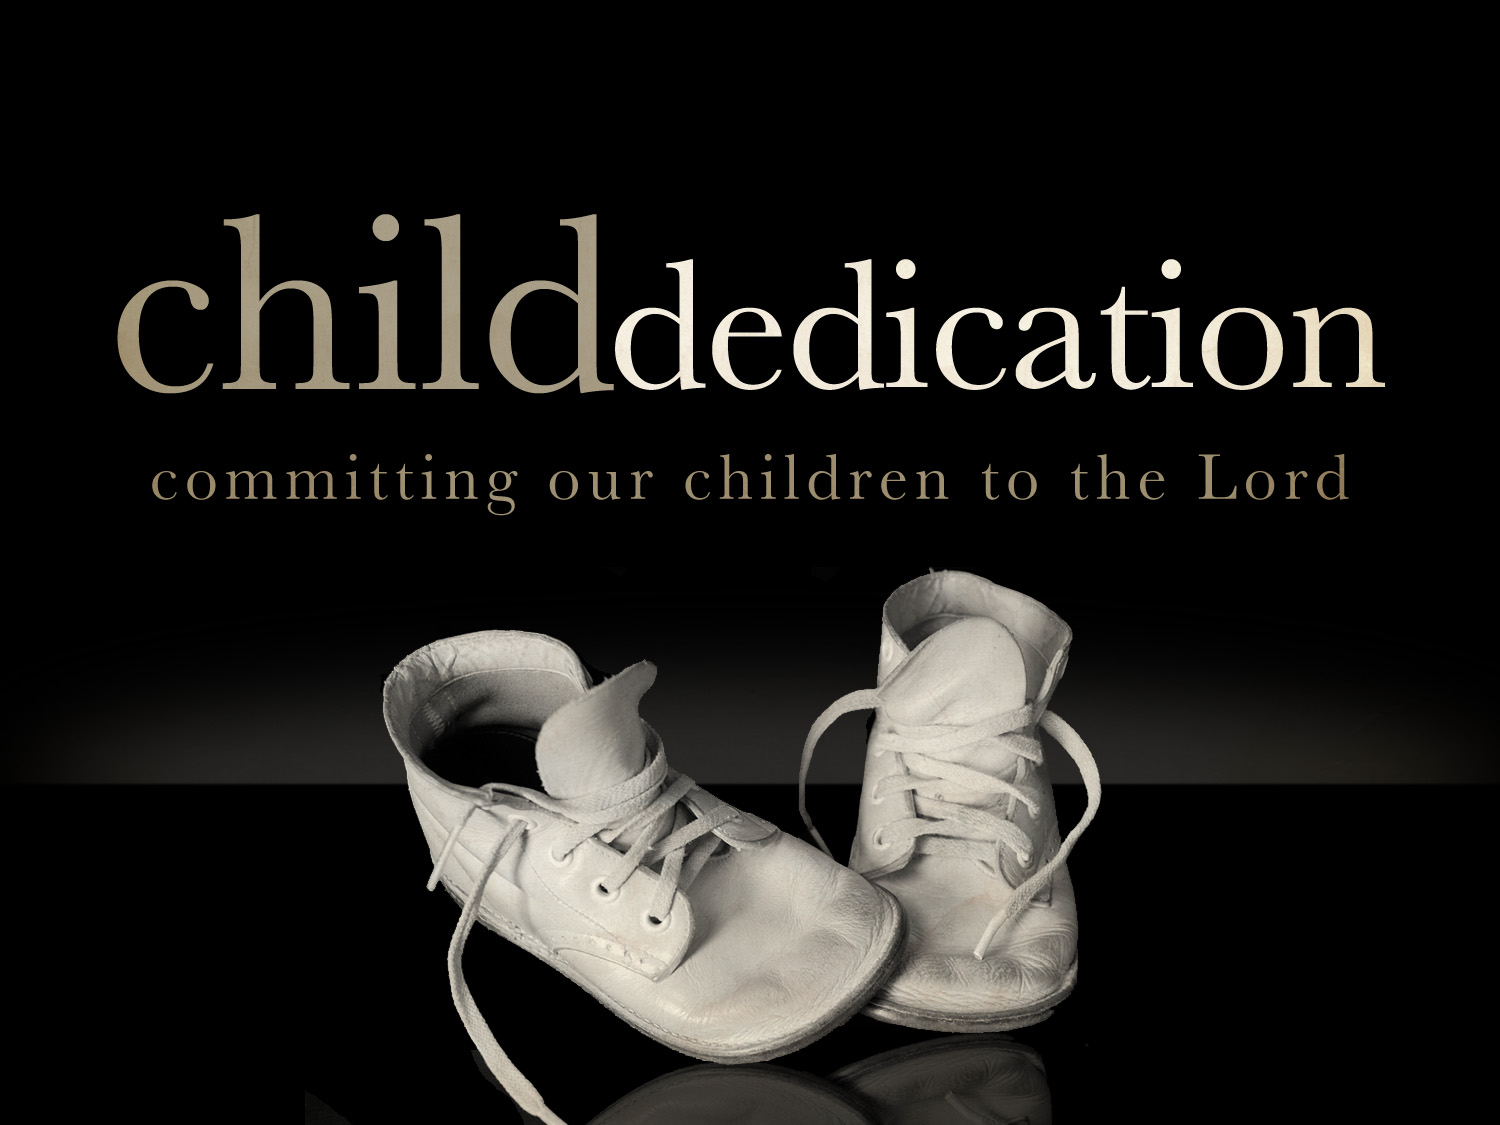 child dedication t jpg degre lynn honore and polynice junior paul will dedicate their daughter chloe lynne paul today we pray we can be a blessing to their family and support as